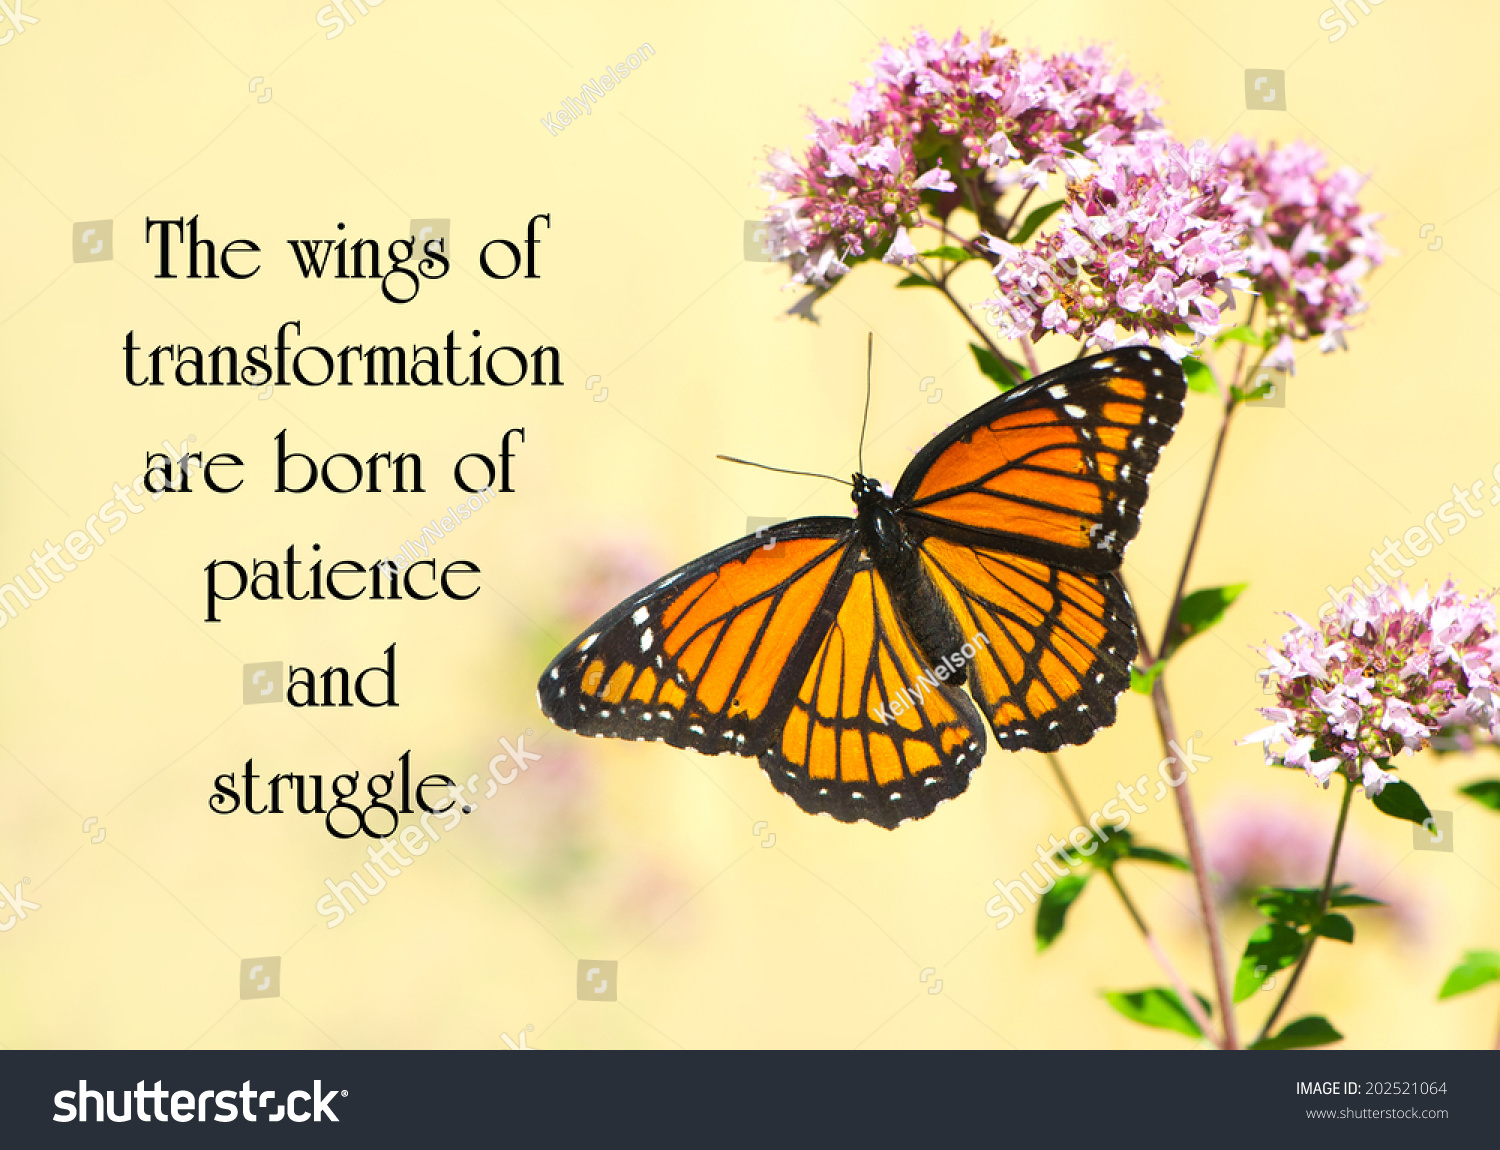 Royalty free inspirational quote on life by janet s 202521064 inspirational quote on life by janet s dickens with a beautiful monarch butterfly perched on some flowers stock photo izmirmasajfo